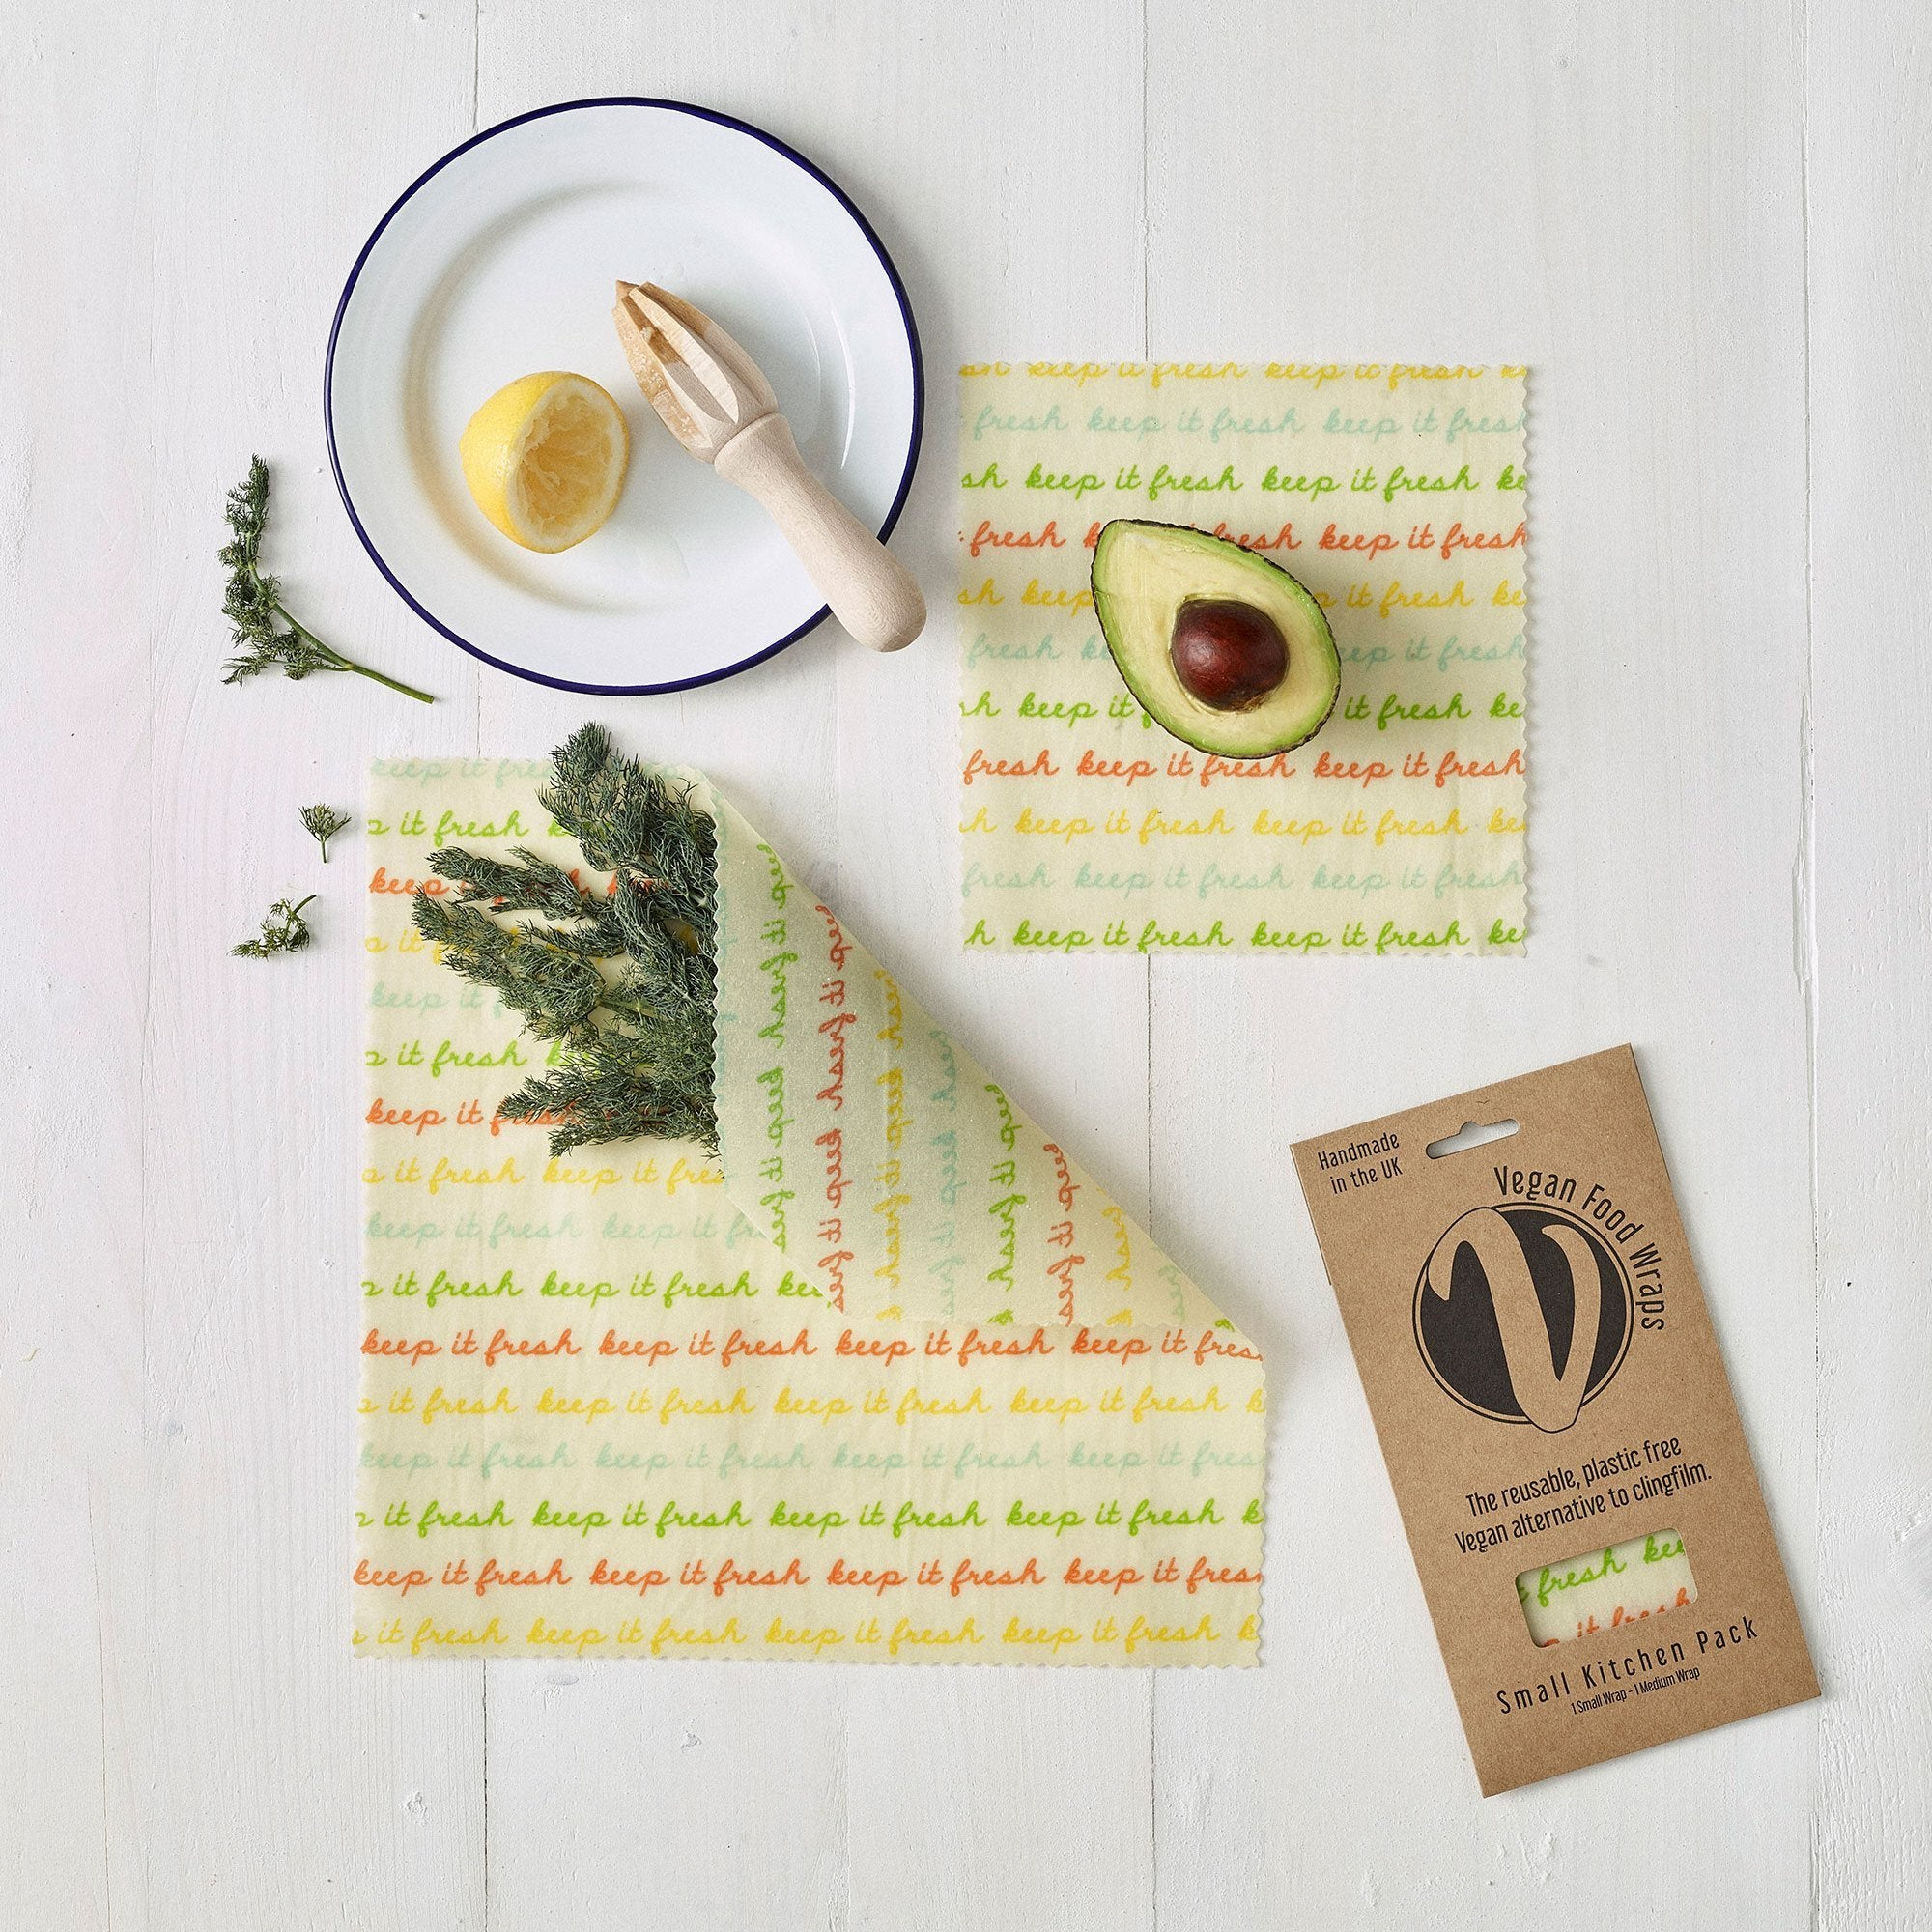 Vegan Food Wrap - Small Kitchen Pack | Food Wrap - The Naughty Shrew